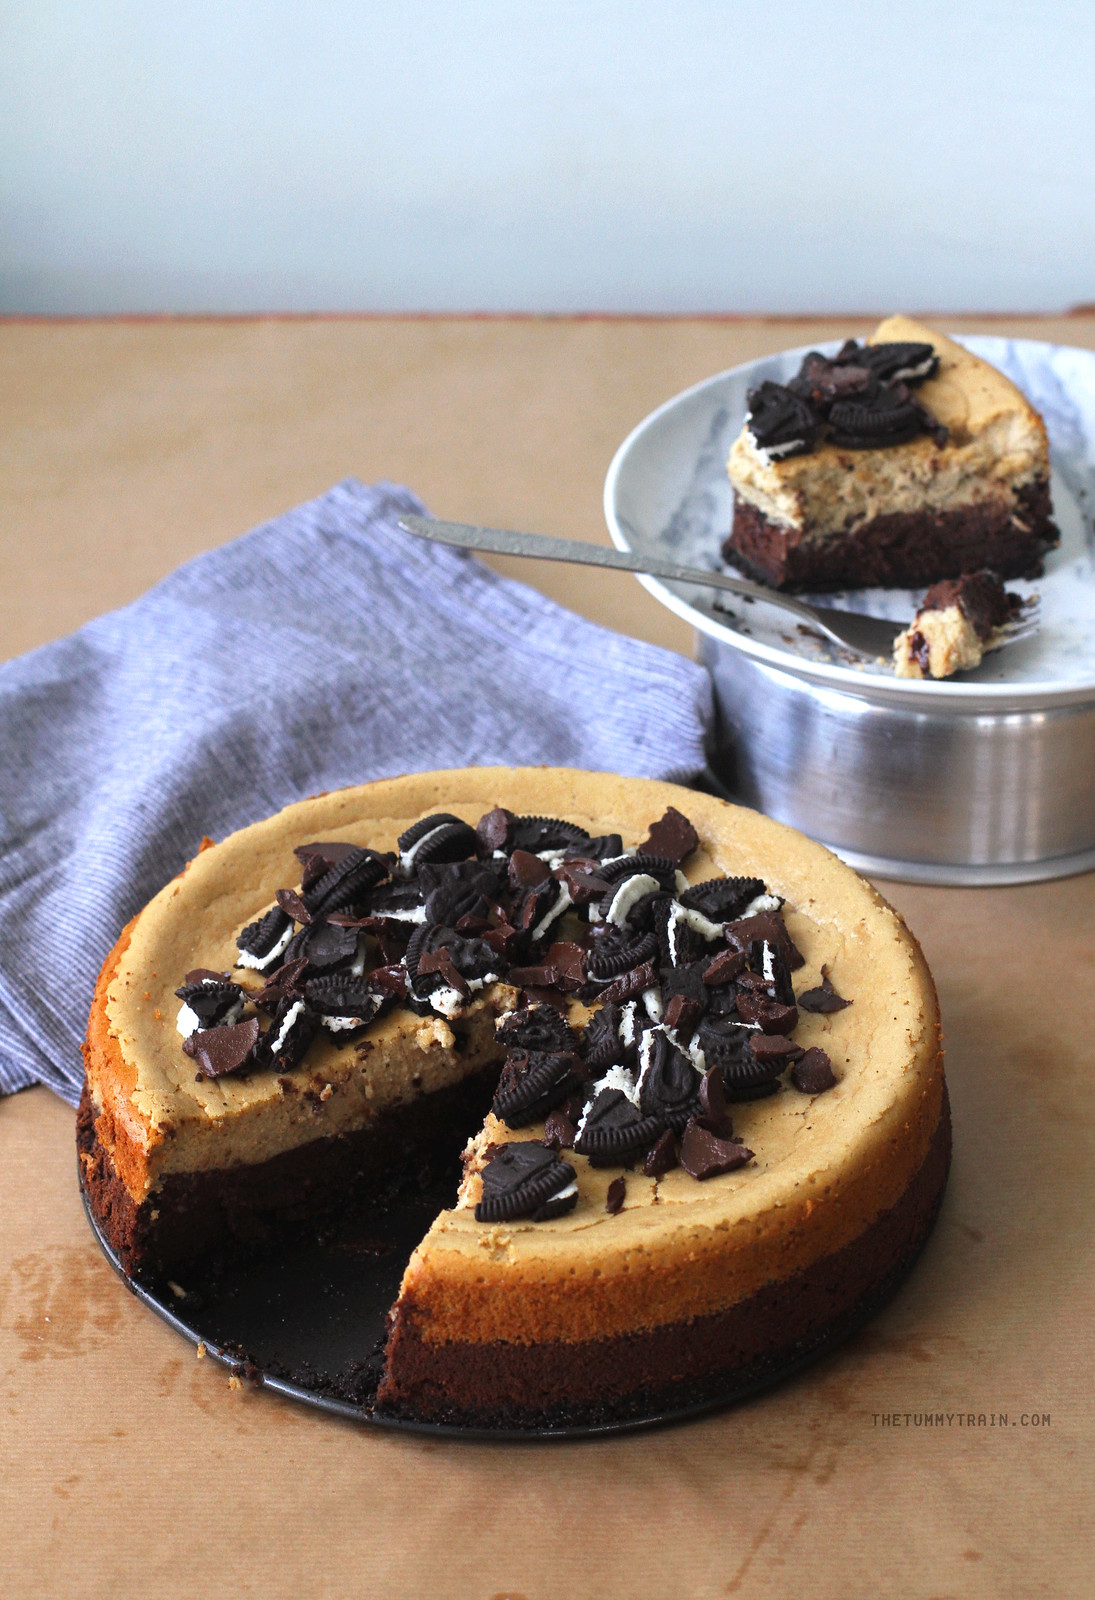 30860757186 cd636c5e88 h - This Chocolate & Coffee Cheesecake is insanely good